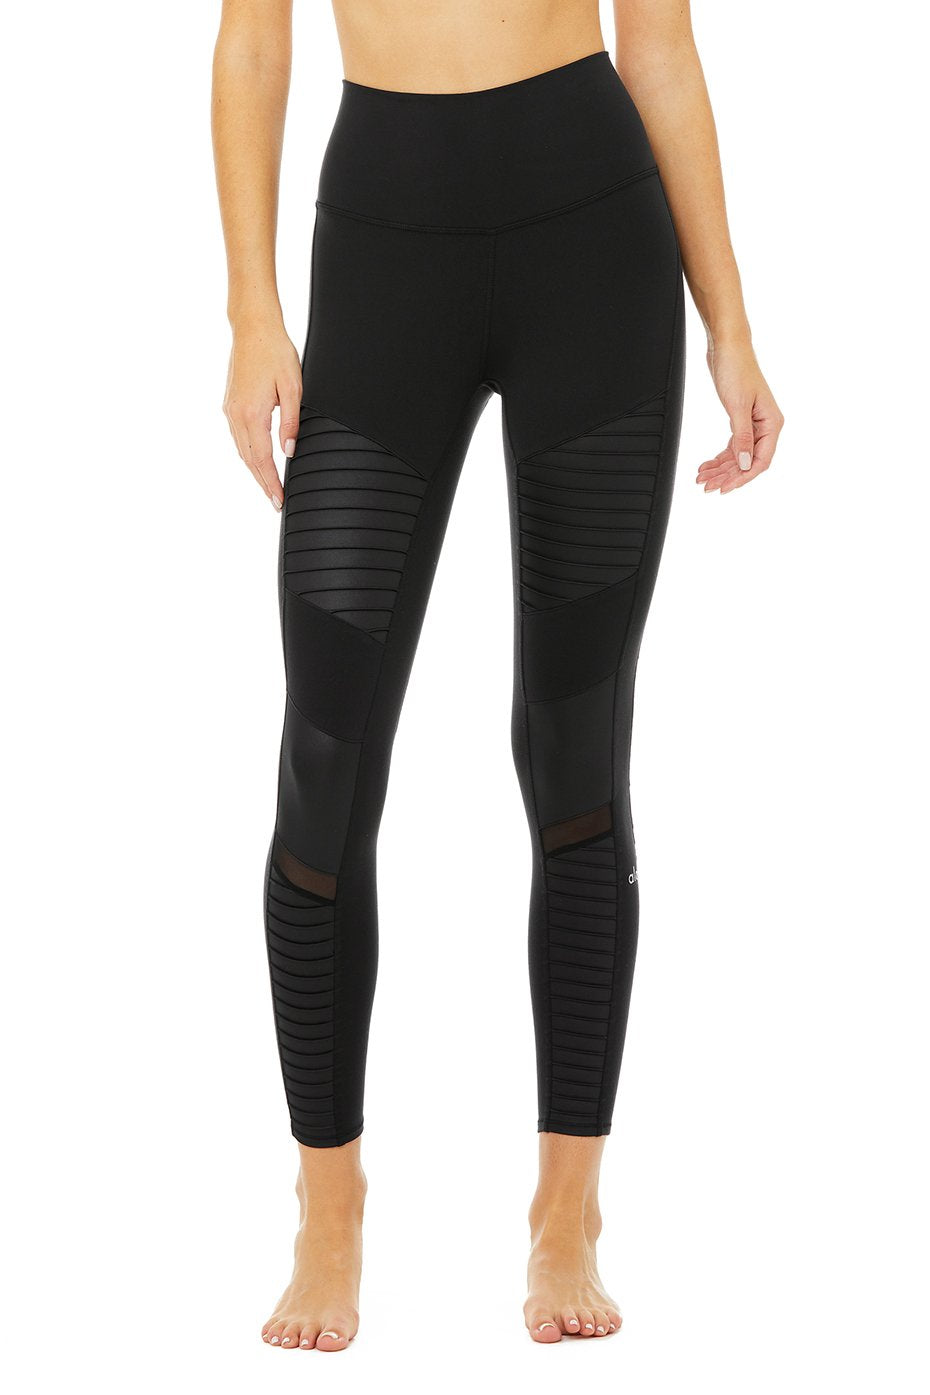 Alo Yoga 7/8 High-Waist Moto Legging ~ Black